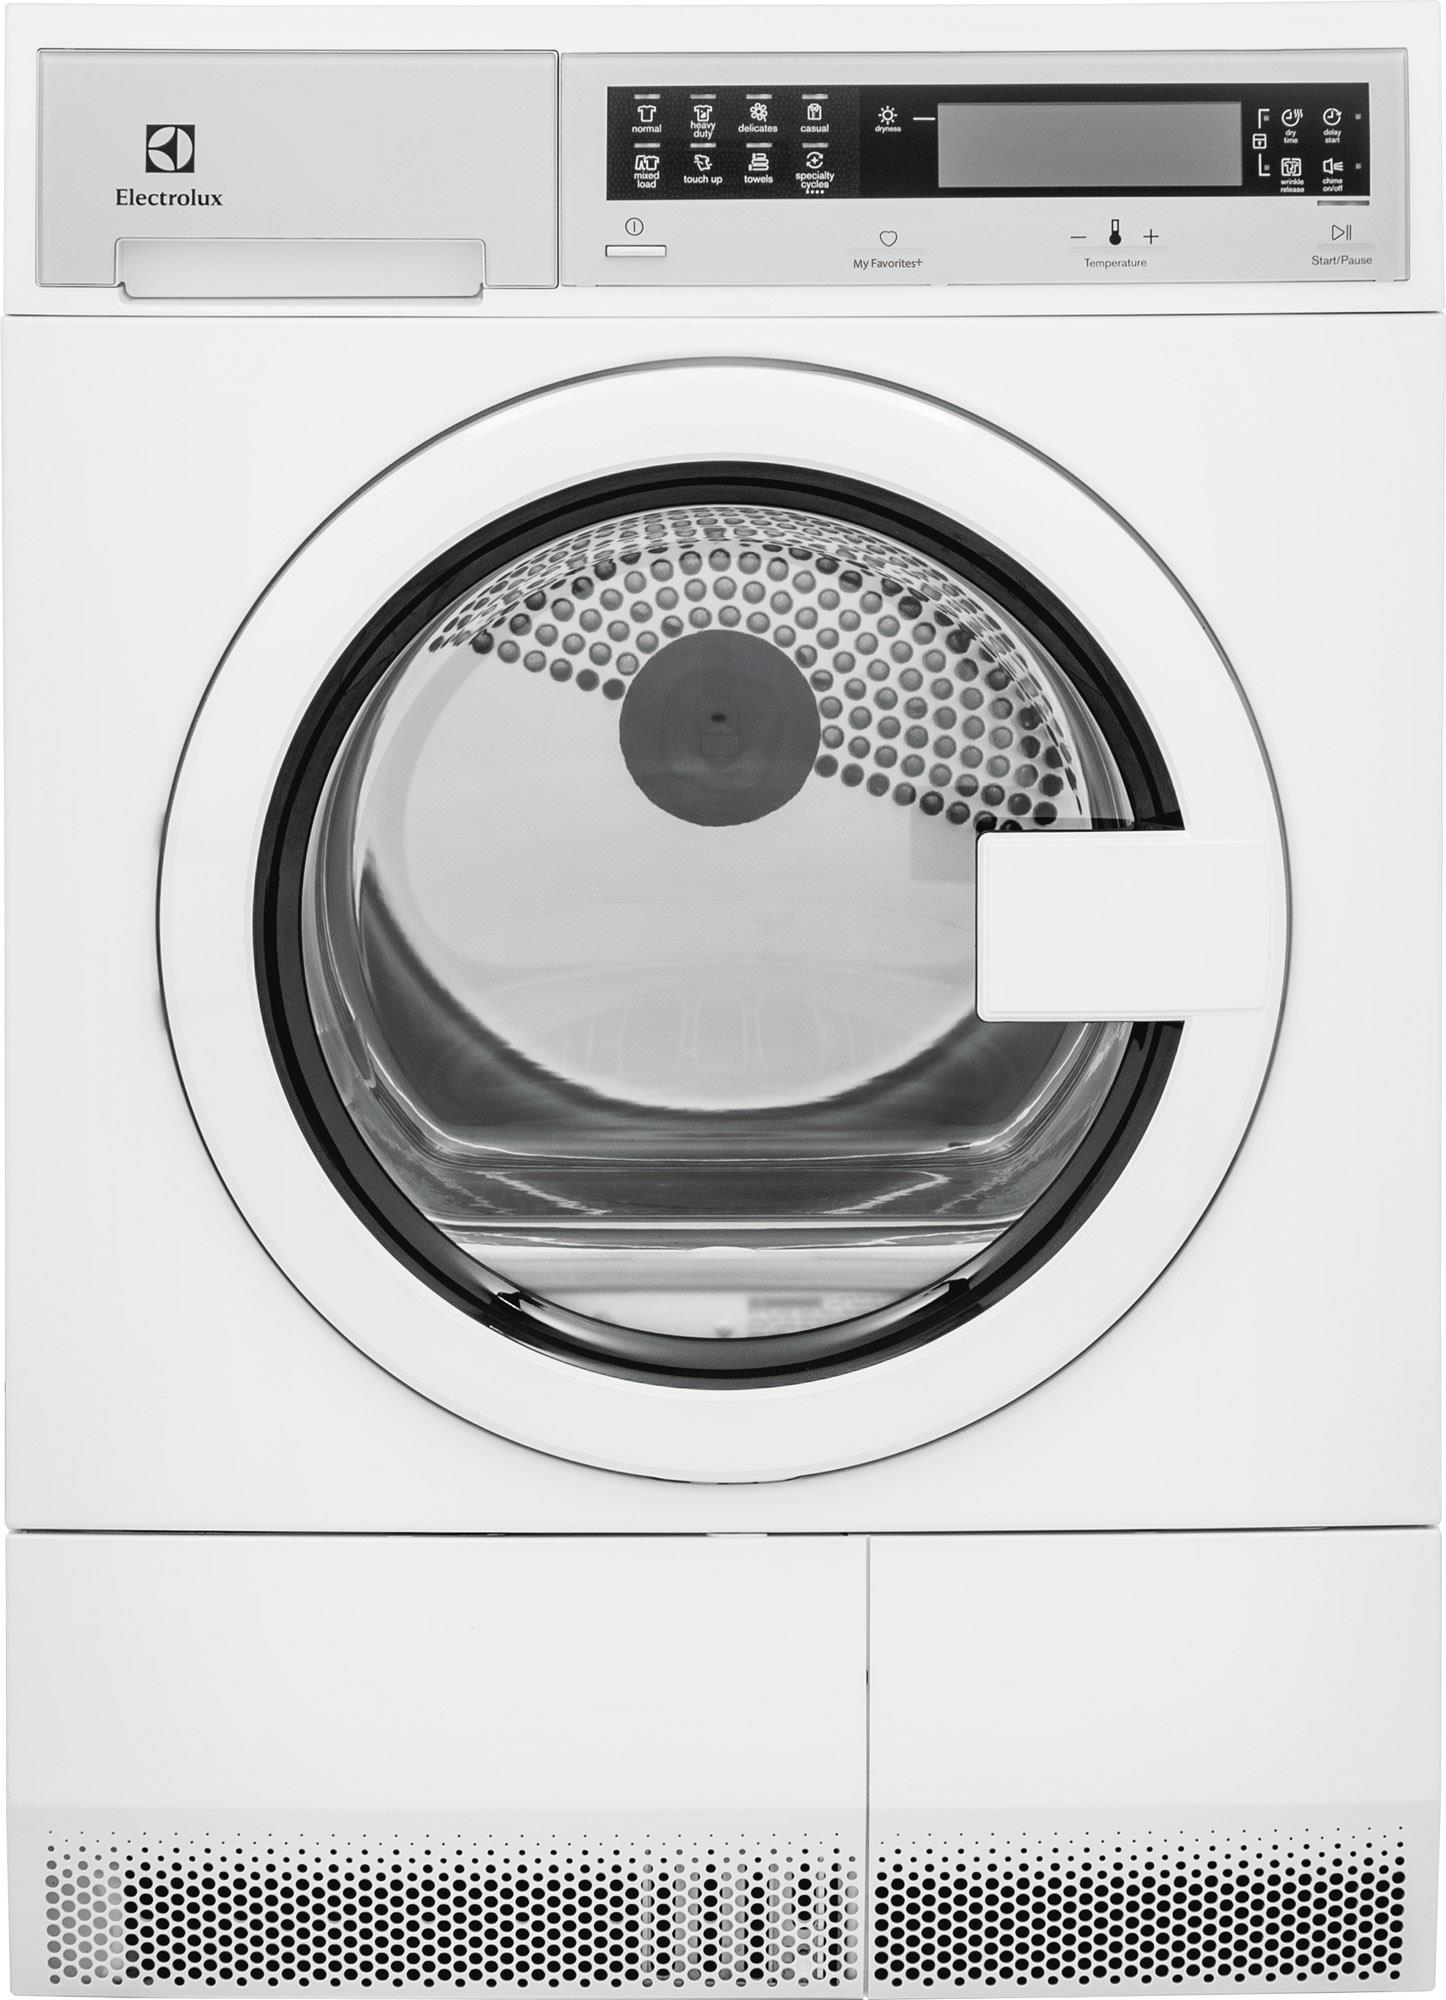 Electrolux Electric Dryers 4.0 Cu.Ft. Front Load Electric Dryer - Item Number: EIED200QSW